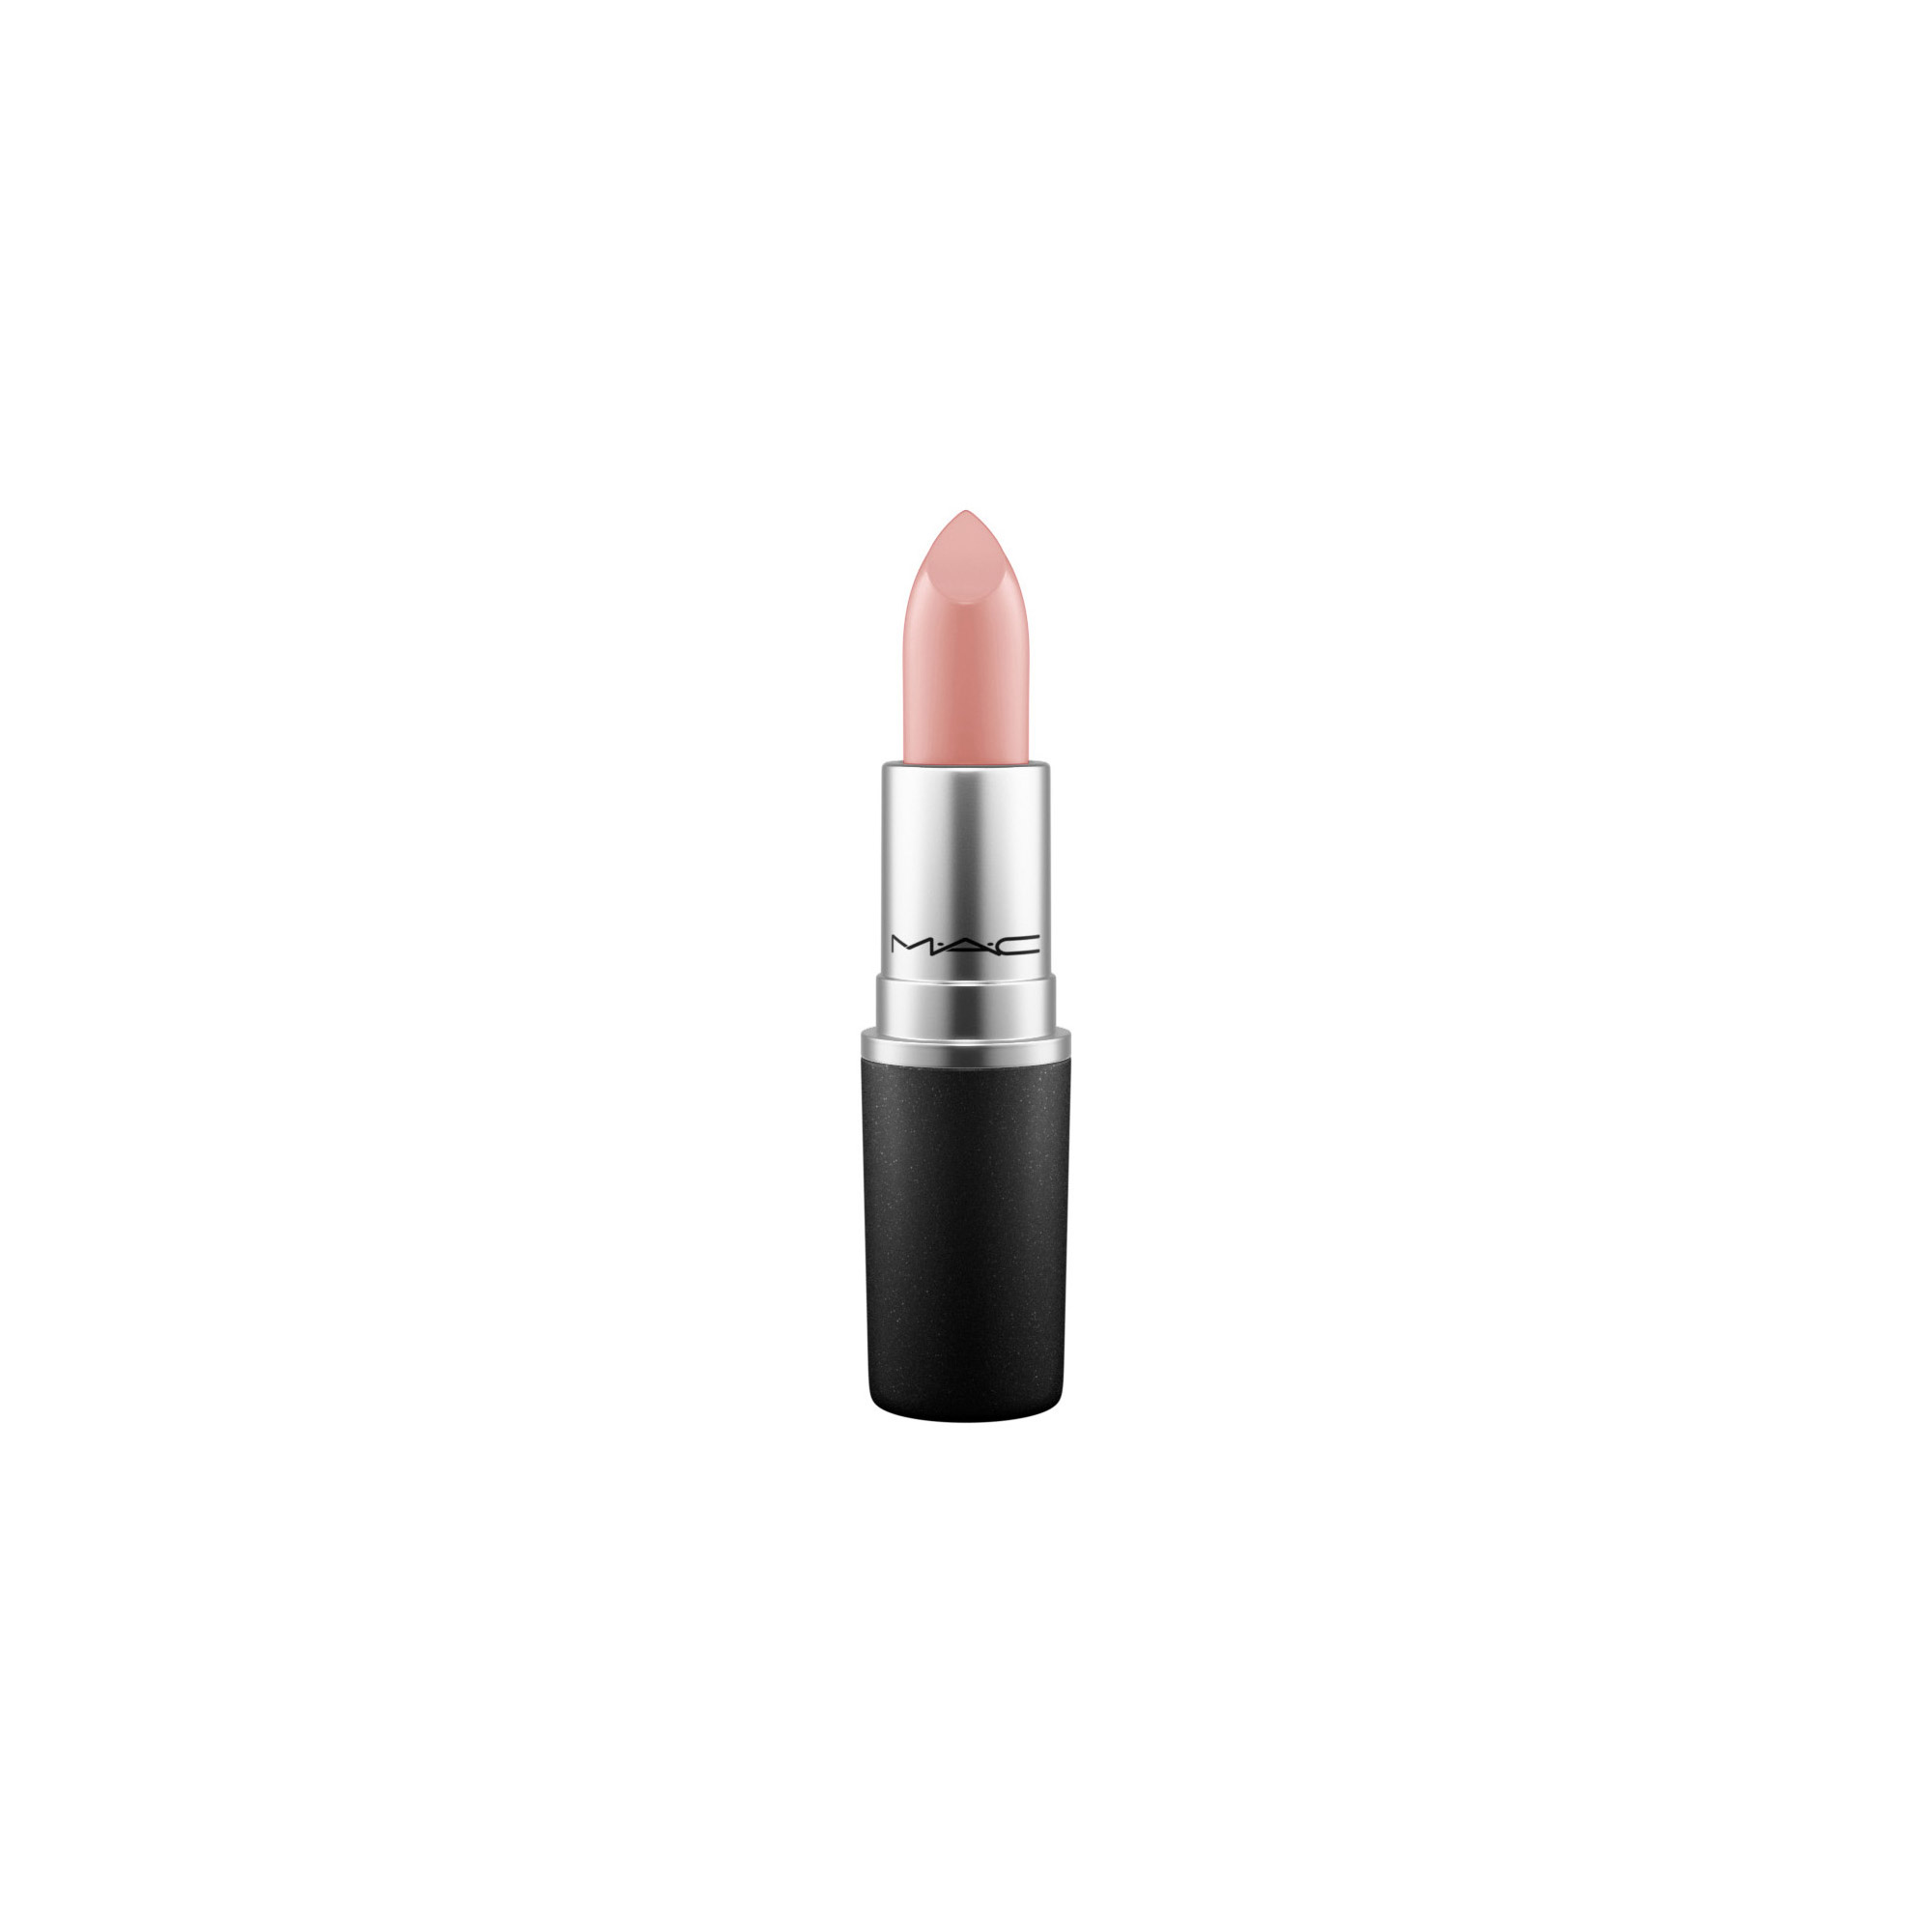 Lipstick Amplified Crème Blankety